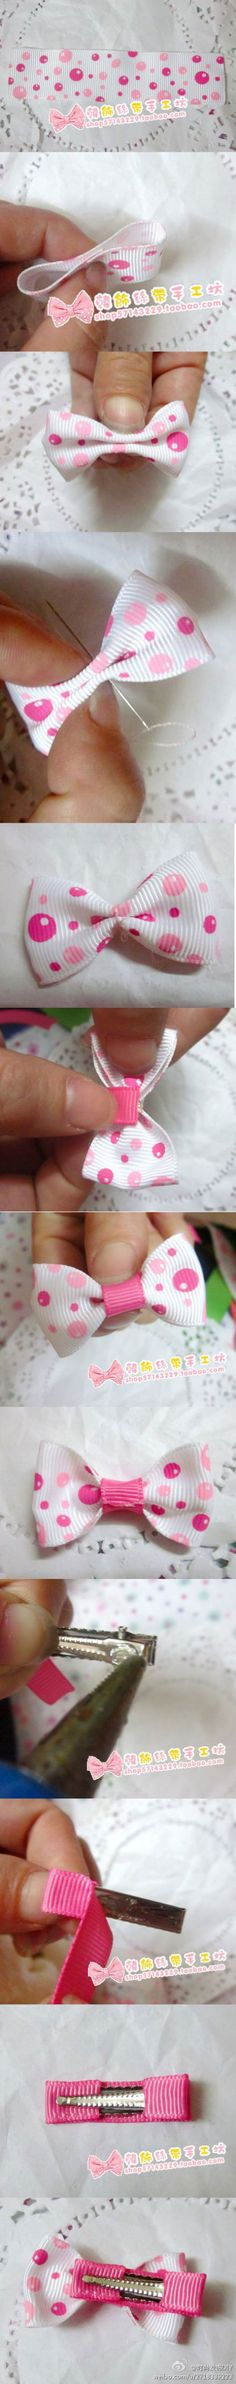 Could have saved alot of money years ago with this one! Small simple hair bow - can make into magnets Could have saved alot of money years ago with this one! Small simple hair bow - can make into magnets